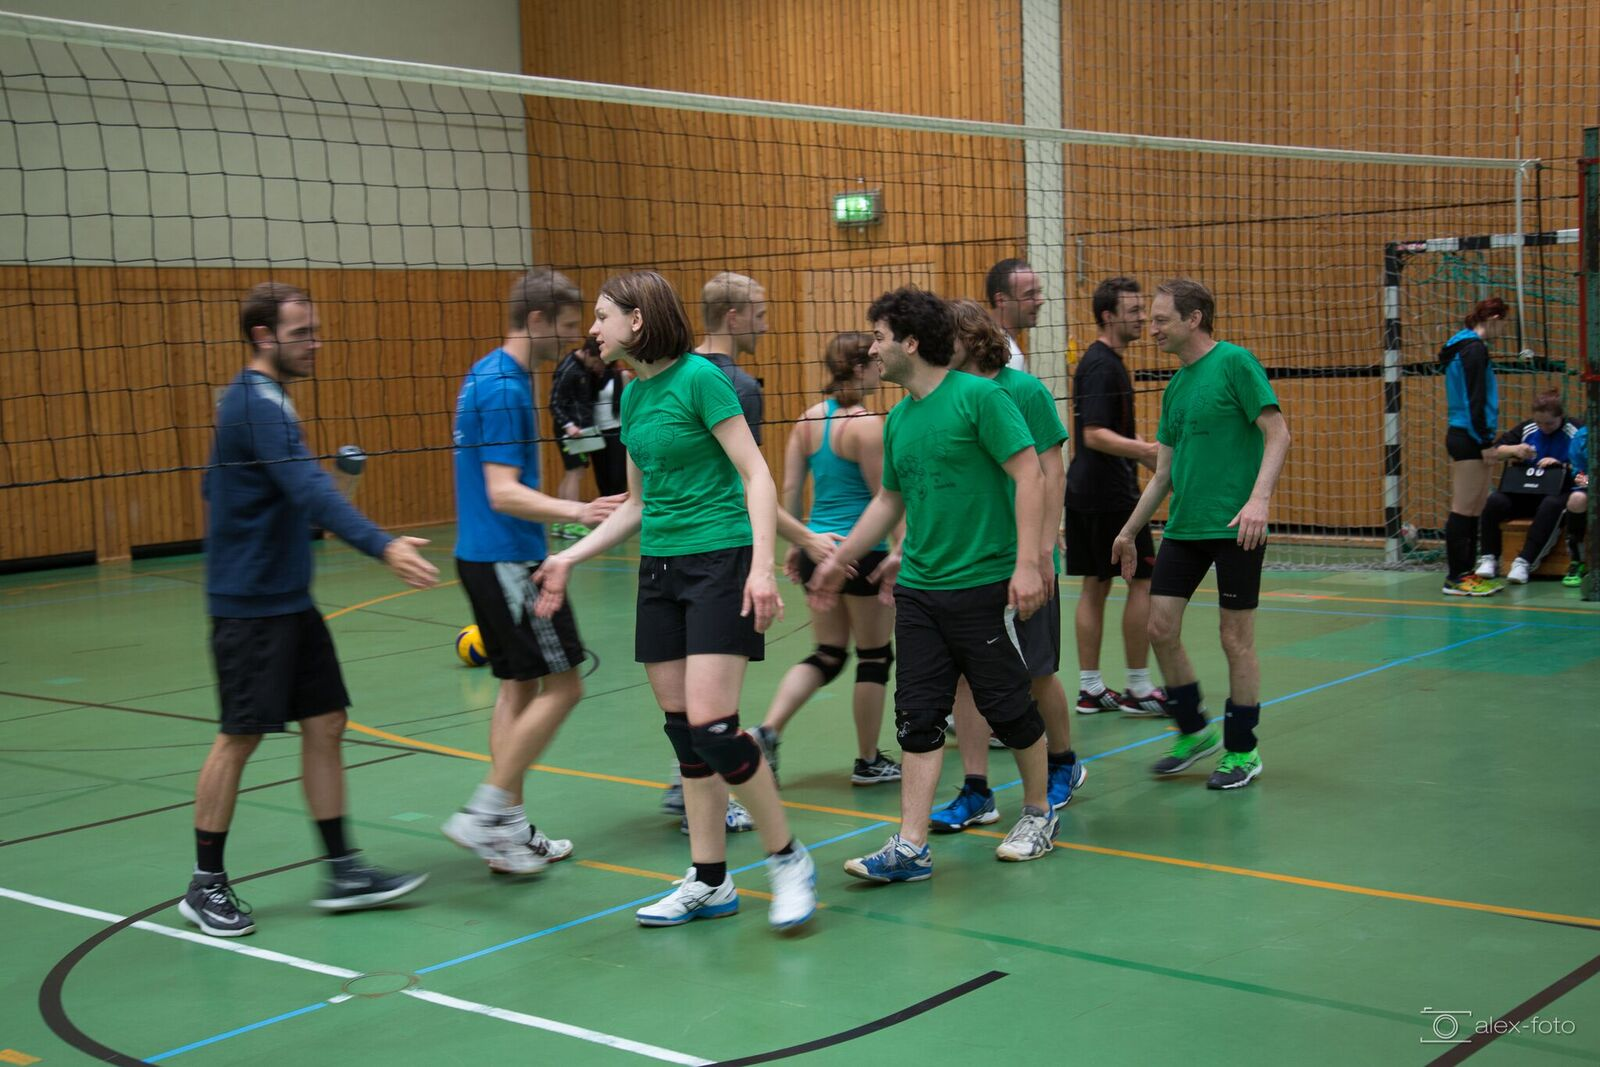 VolleyballturnierV11